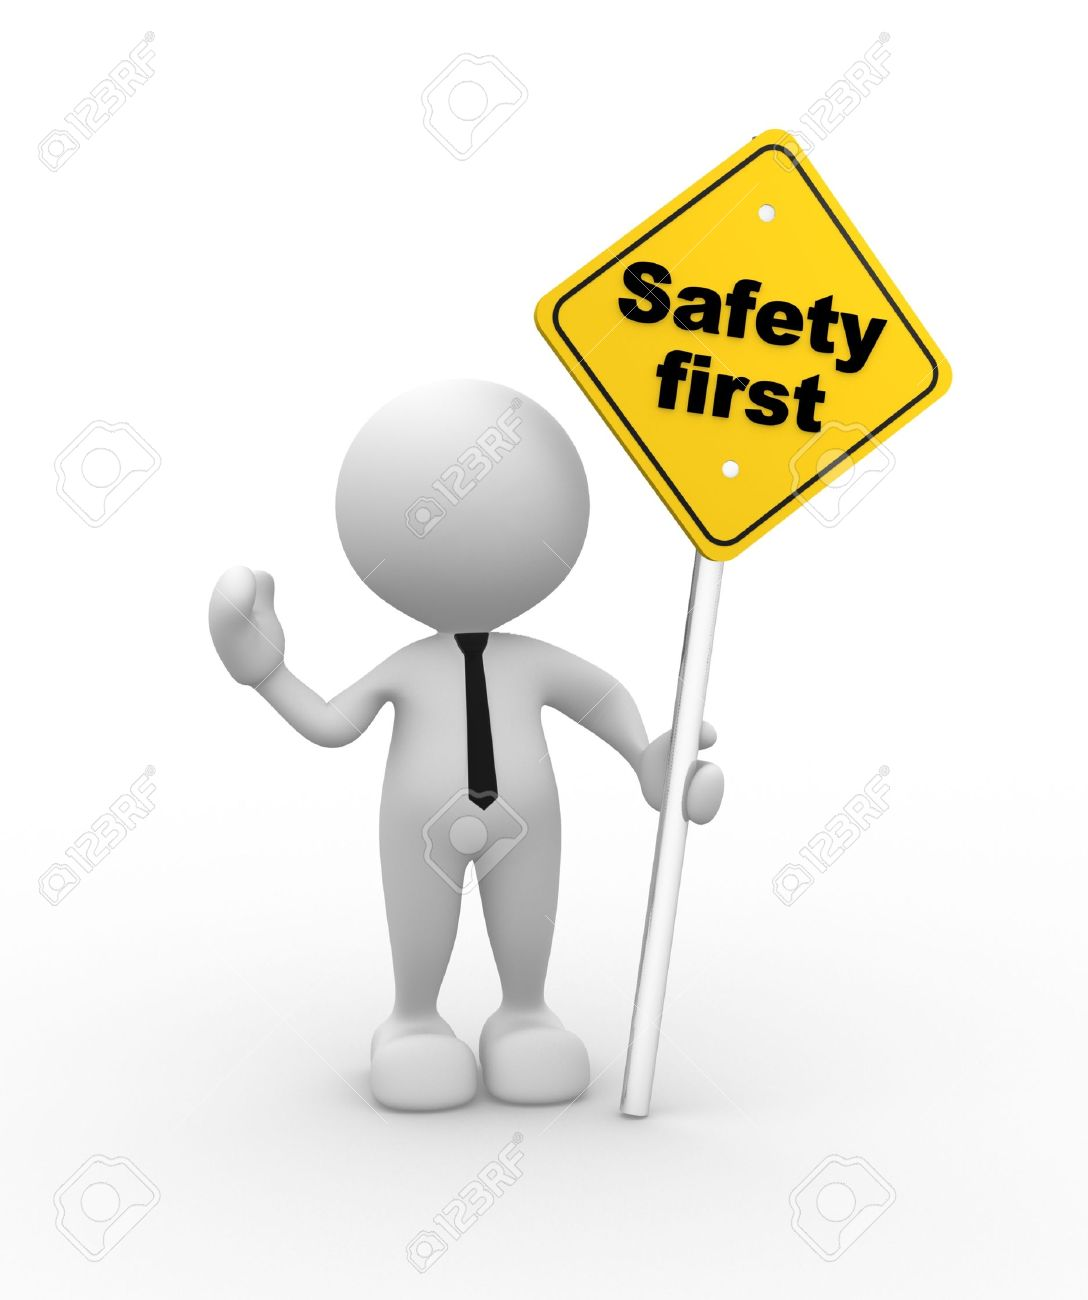 3d people man person with a safety first sign in hand stock photo